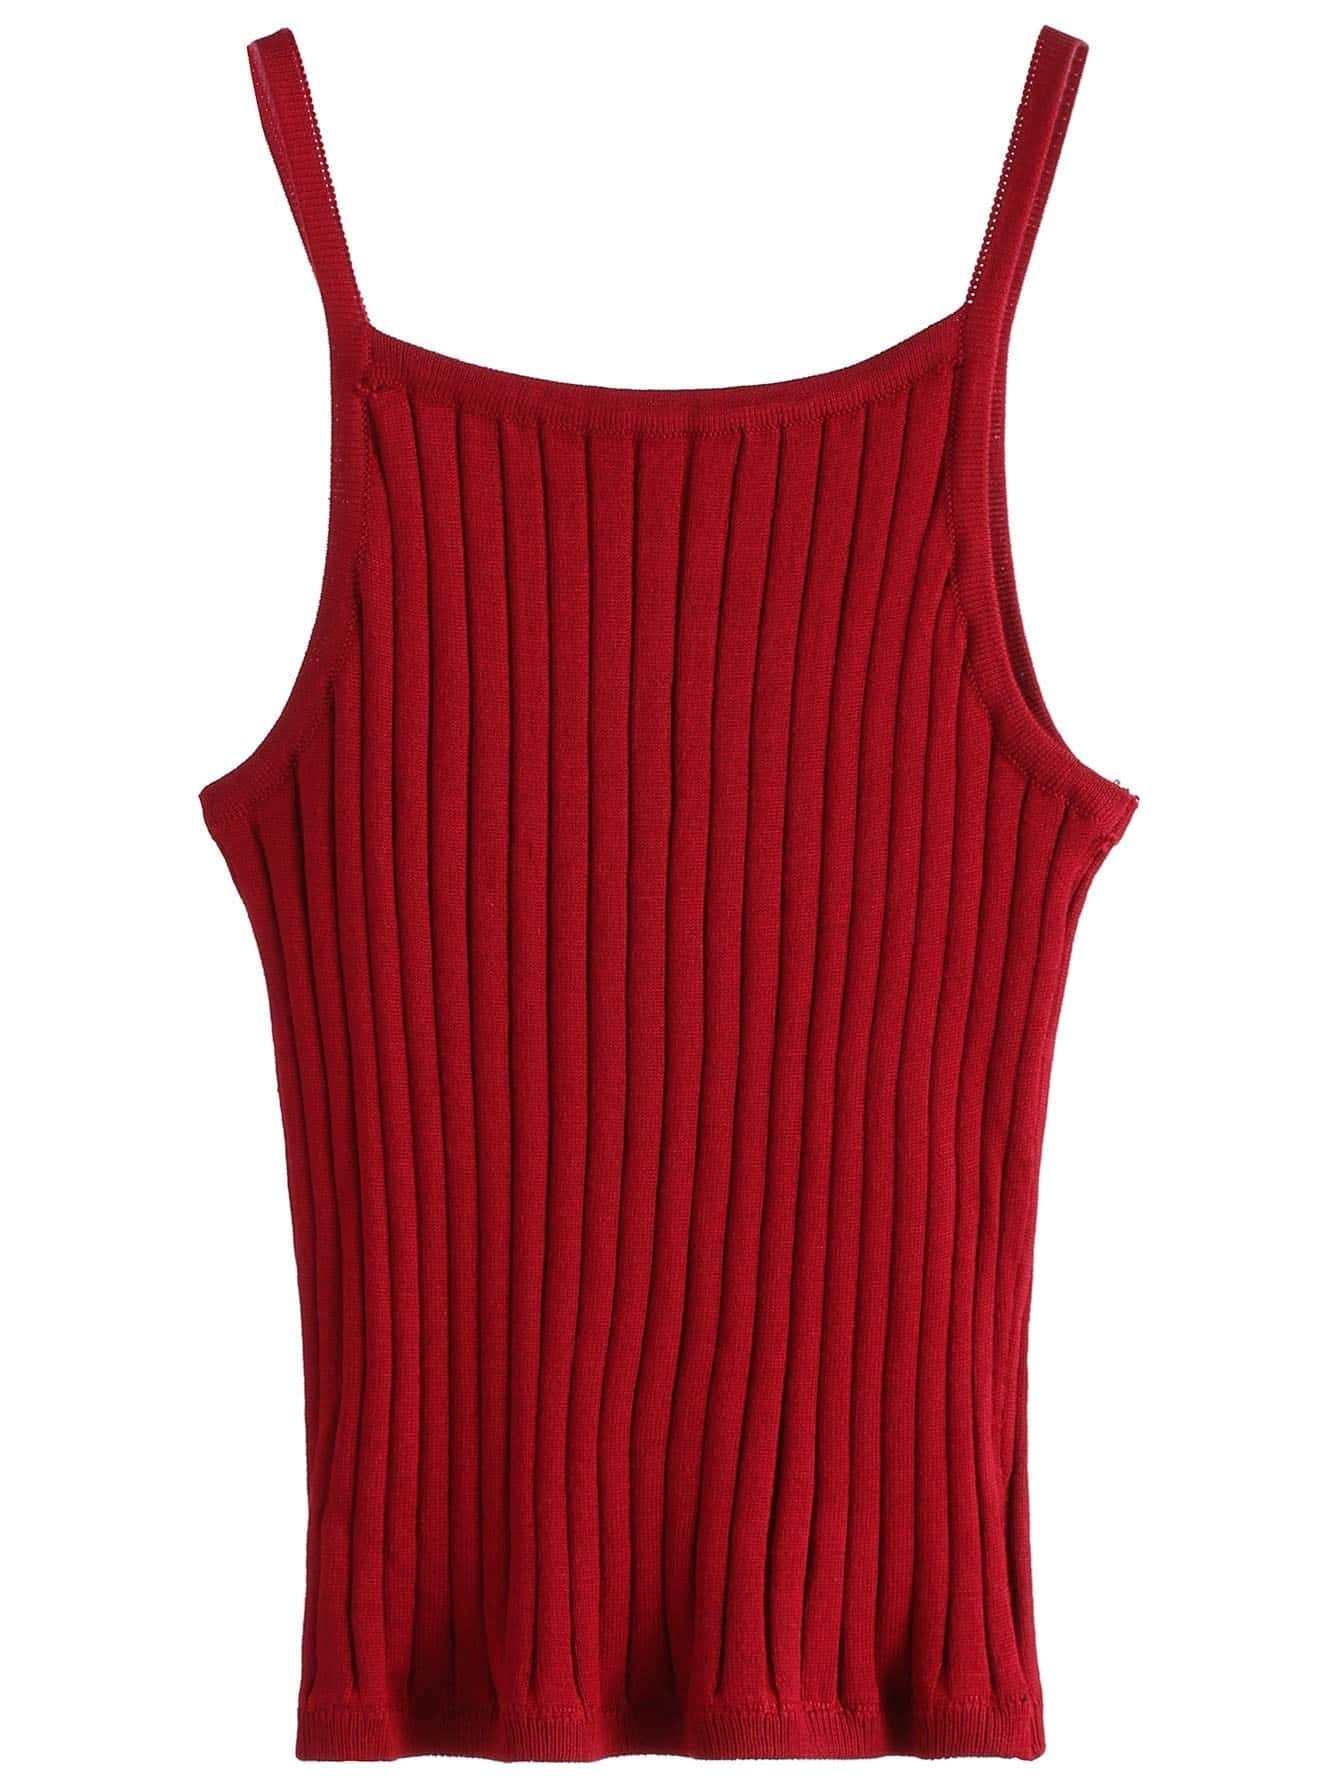 Burgundy Ribbed Knit Cami Top RVES160905001